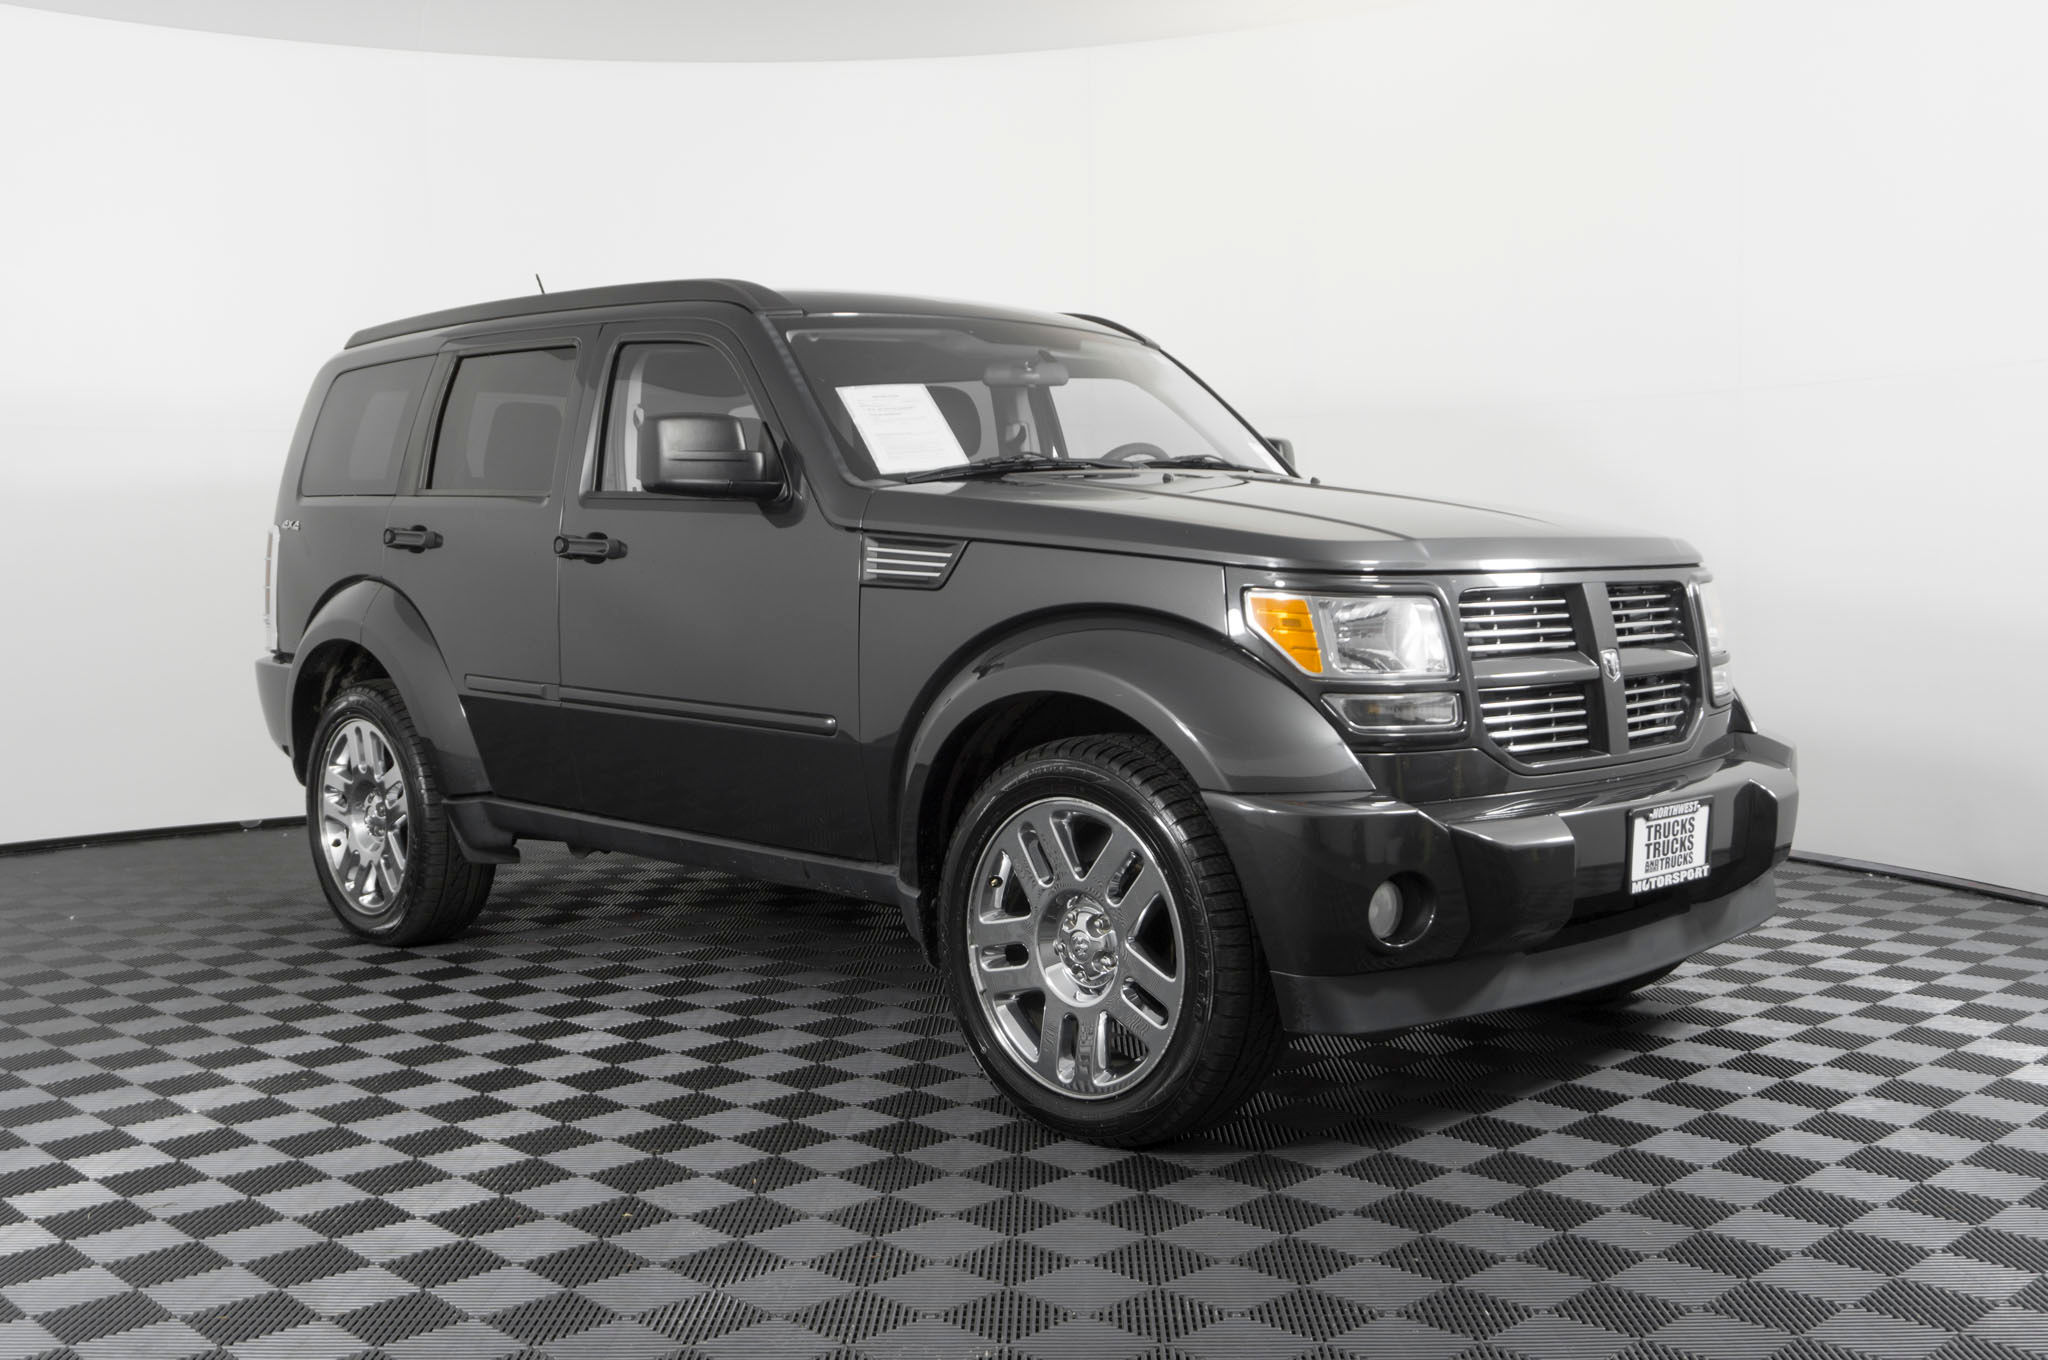 Used 2010 Dodge Nitro Heat 4x4 Suv For Sale Northwest Motorsport